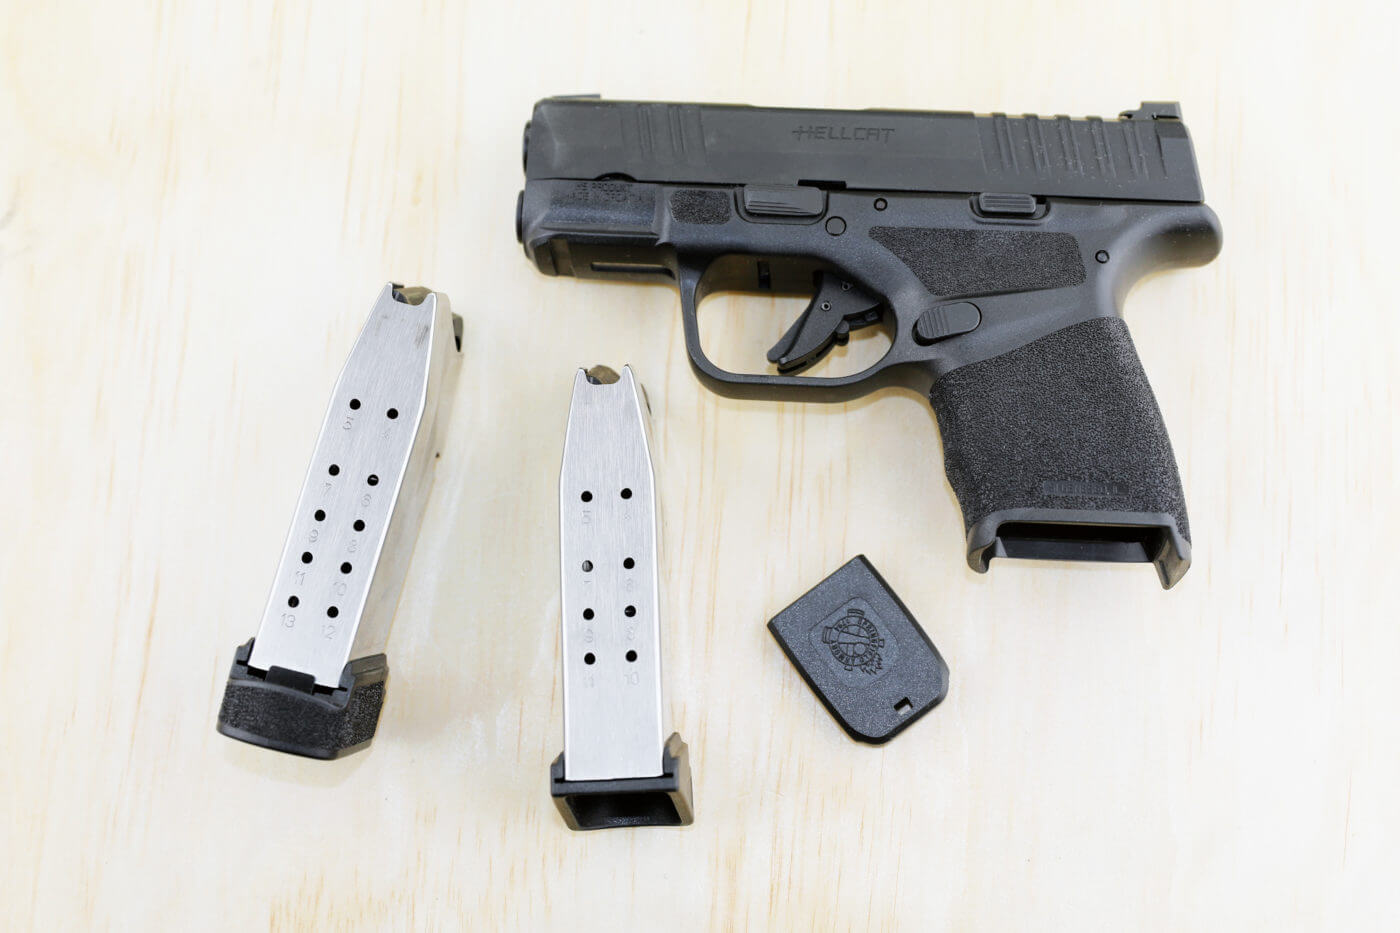 Hellcat backup gun shown with two magazines